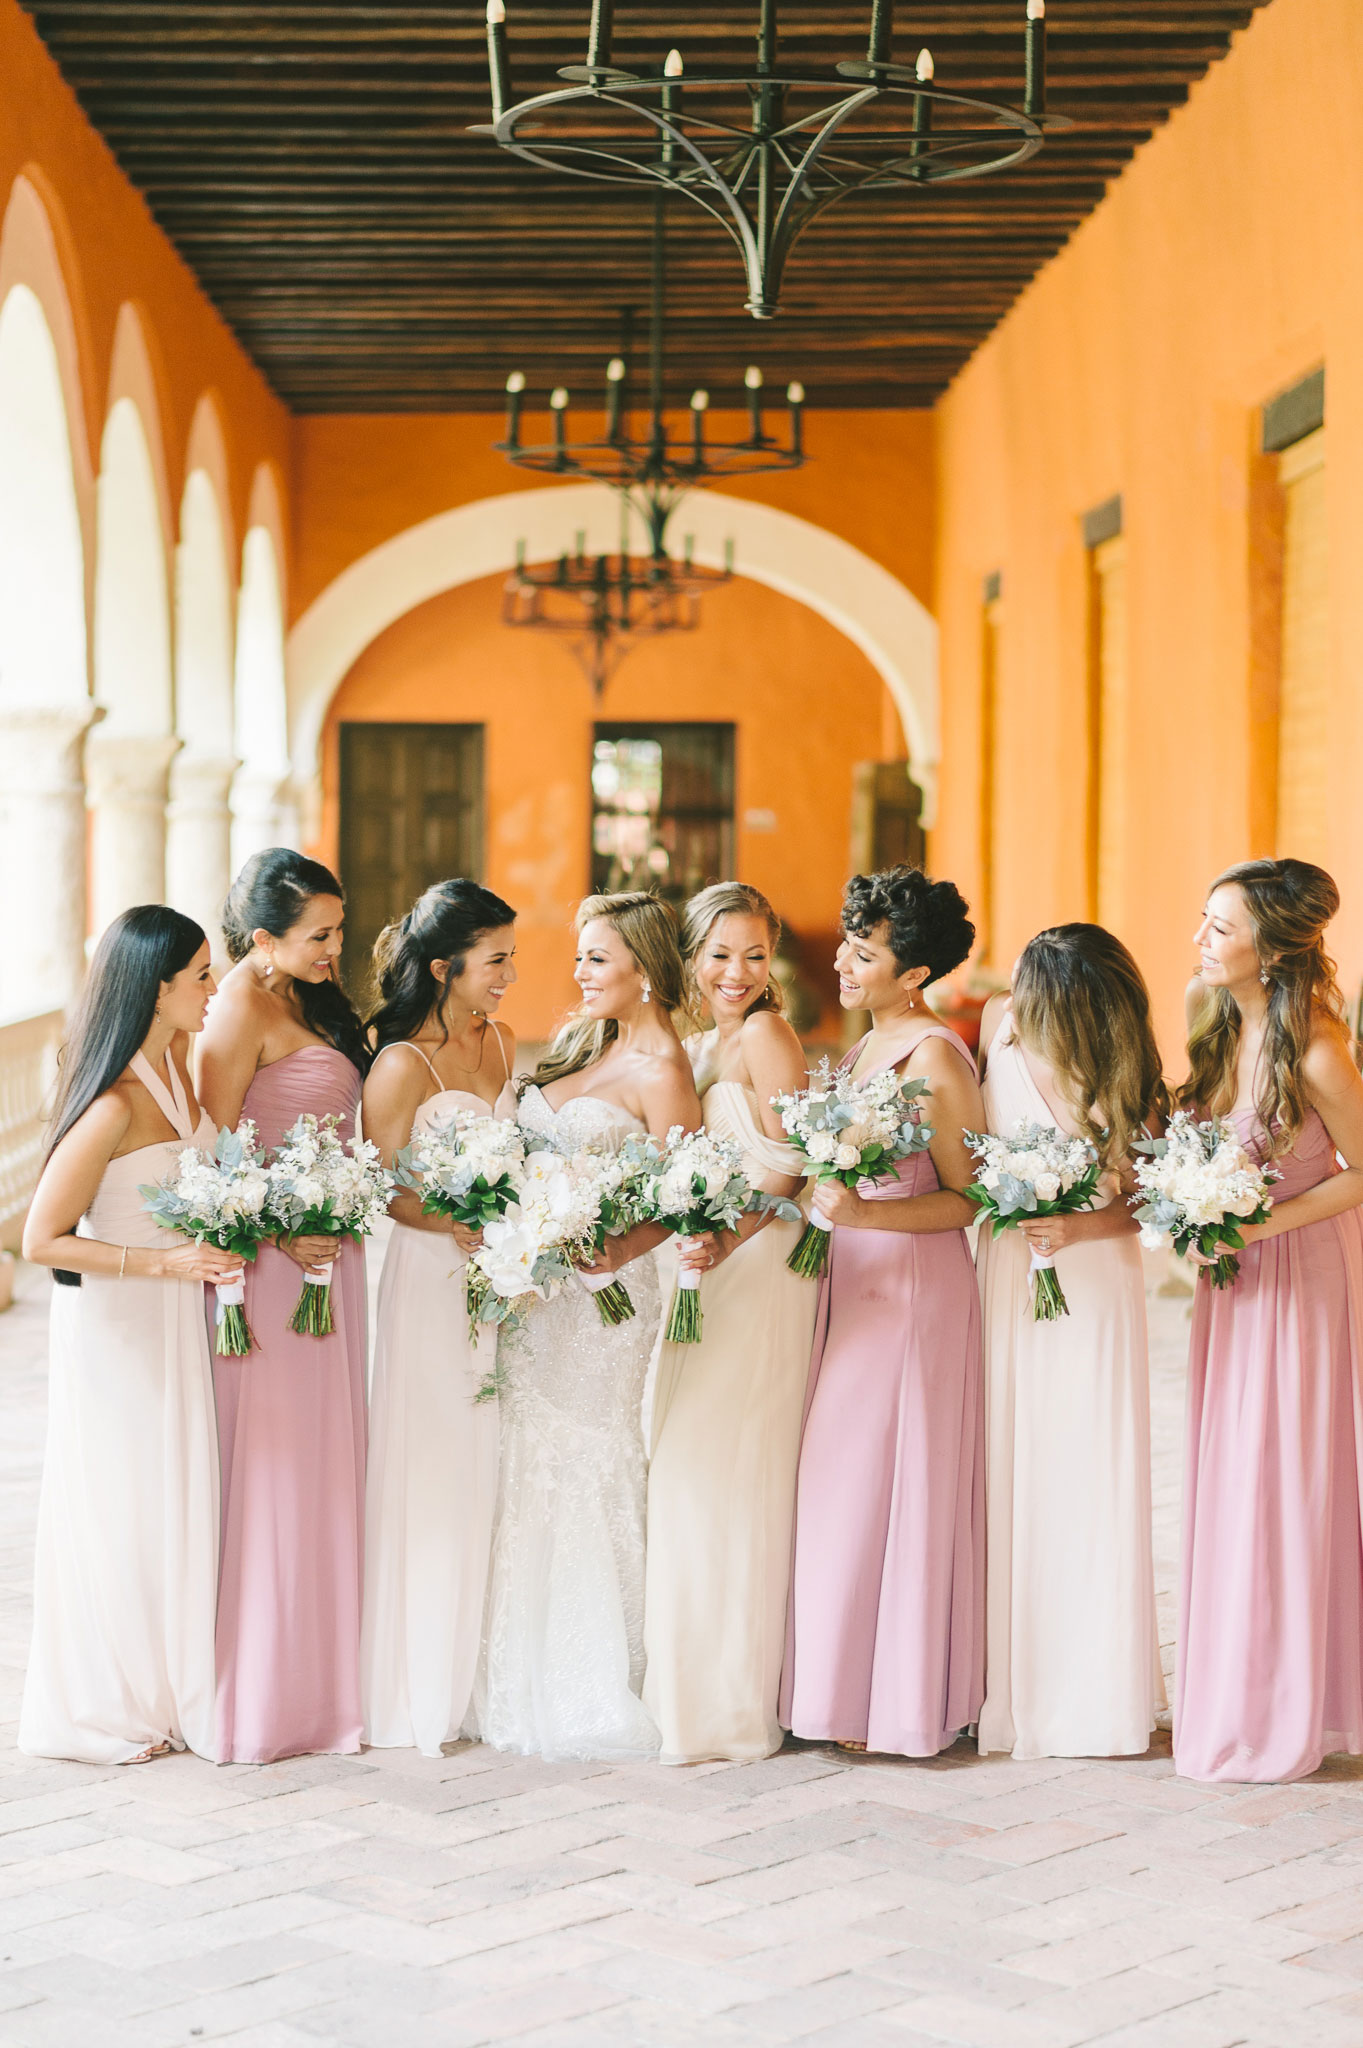 summer wedding ideas light colored bridesmaid dresses gowns light colors